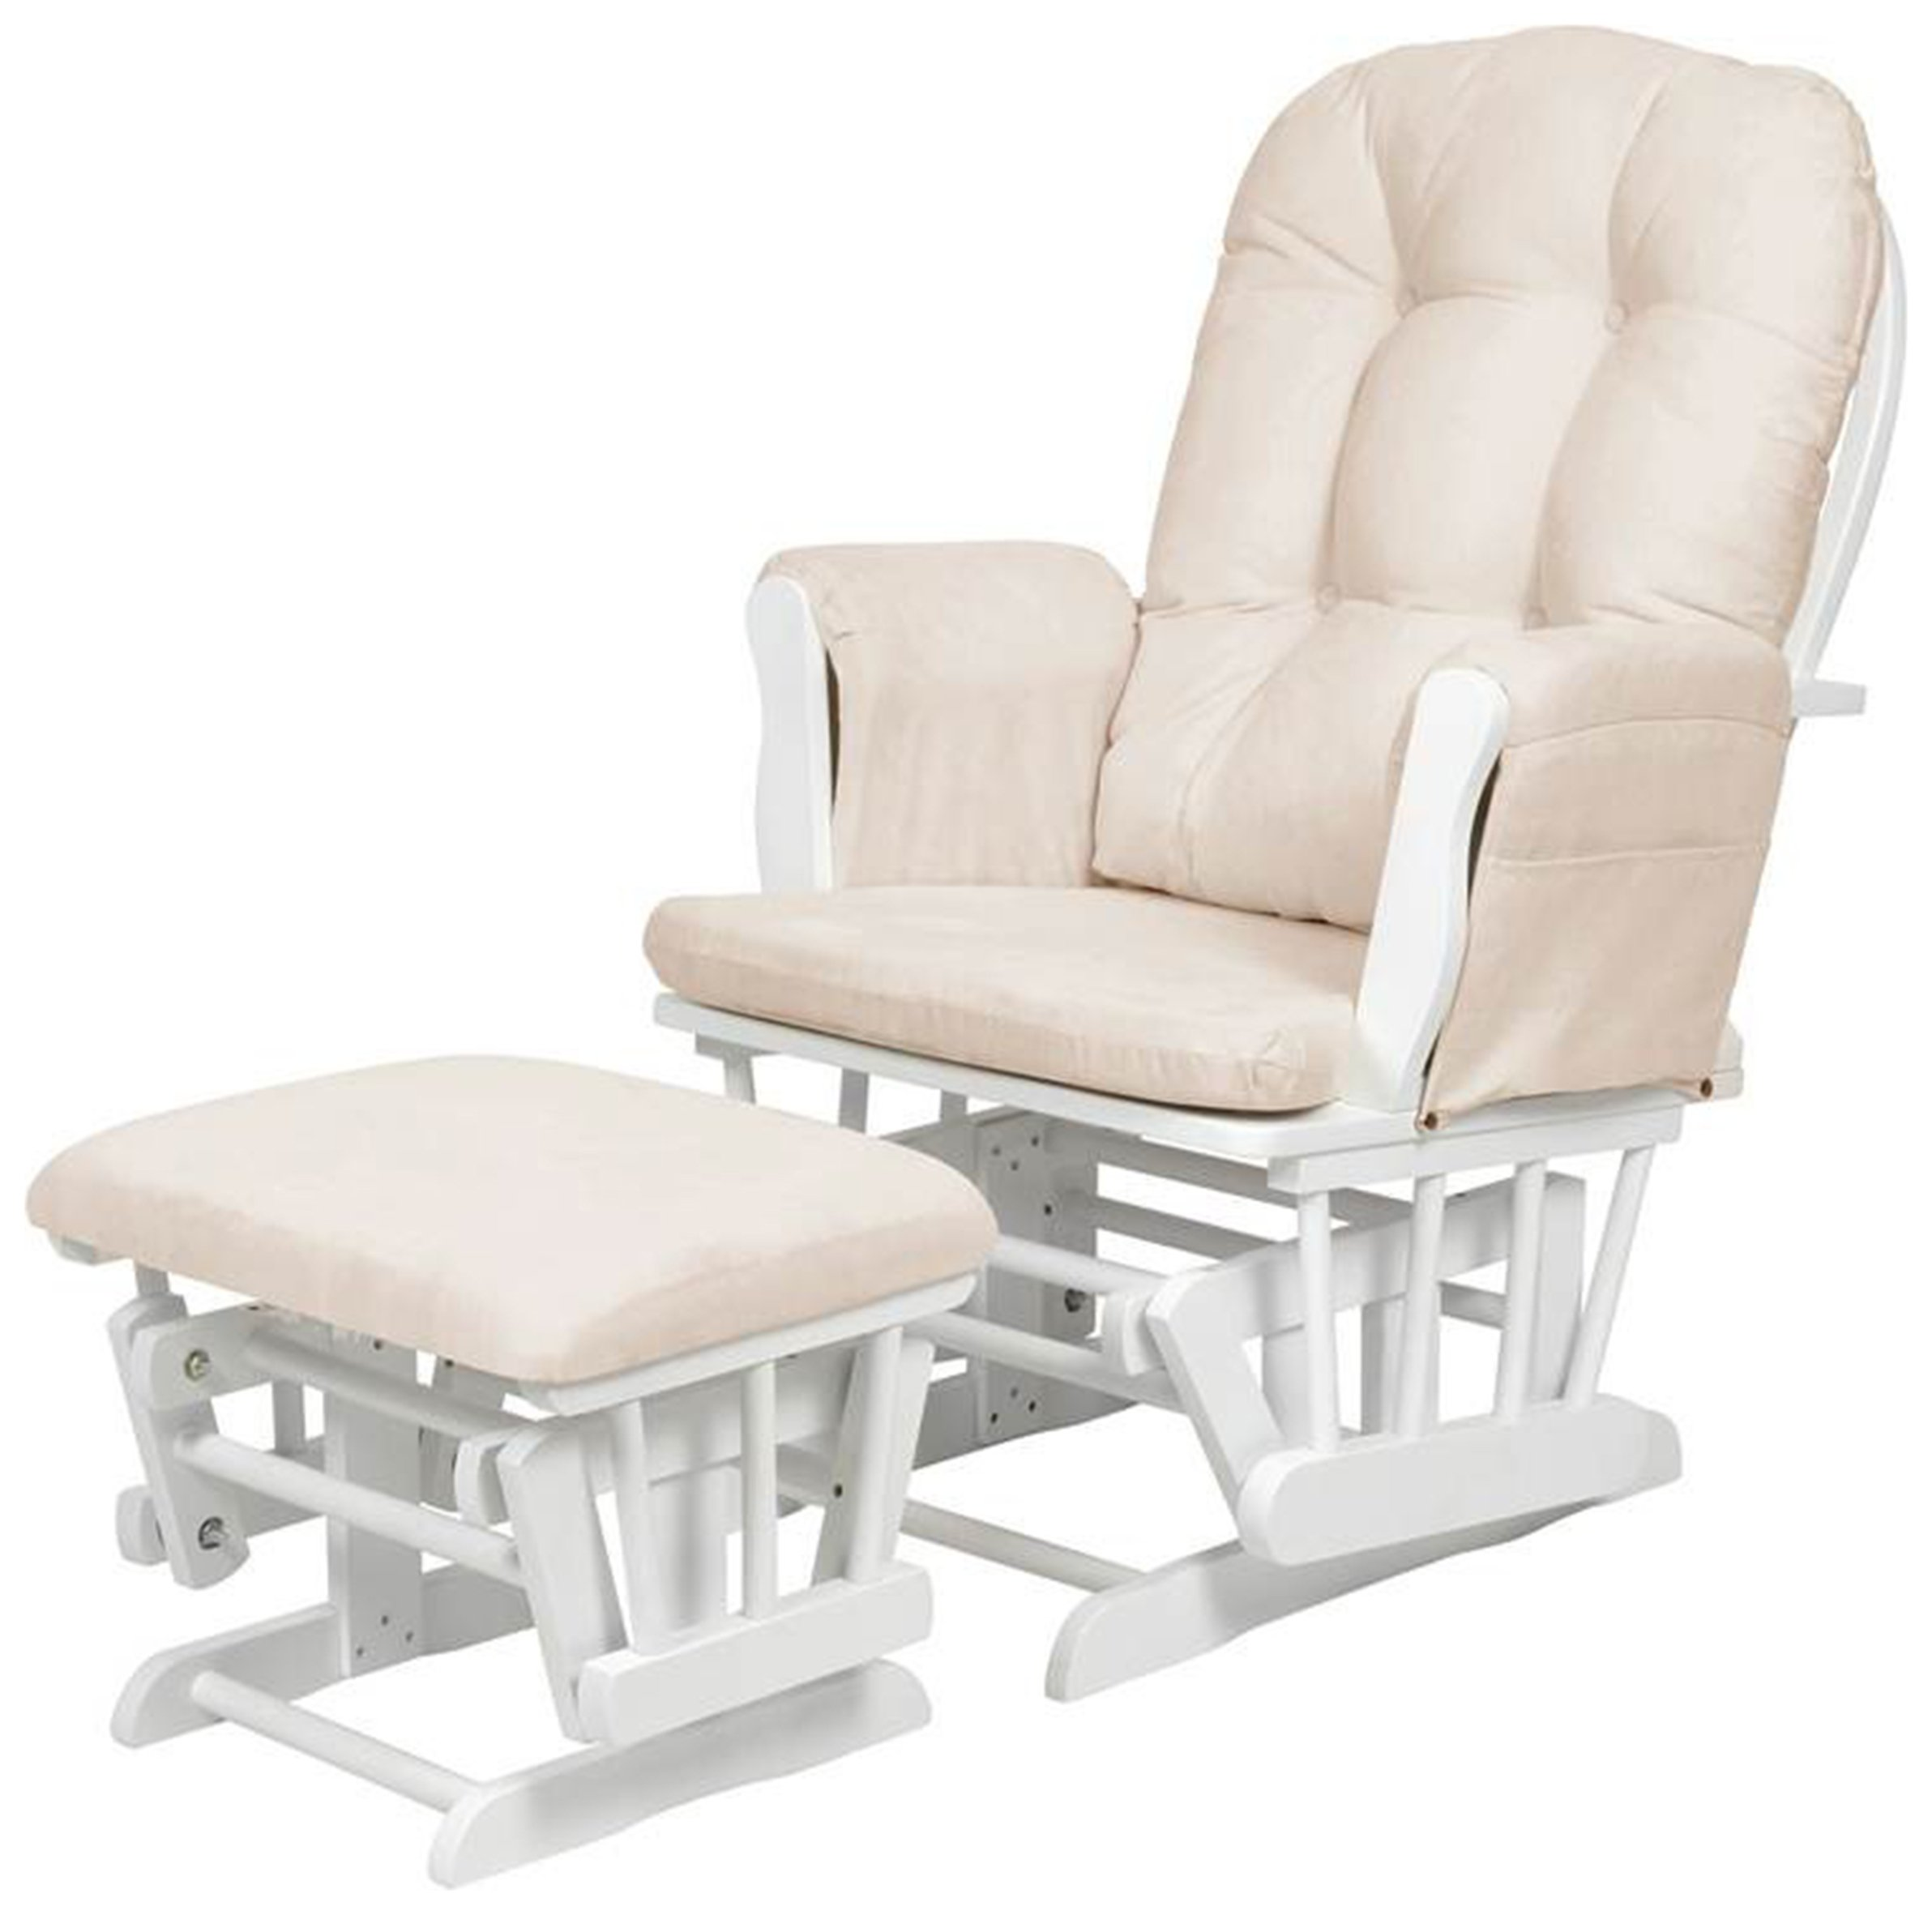 Kub Haywood Glider and Footstool - Beige and white